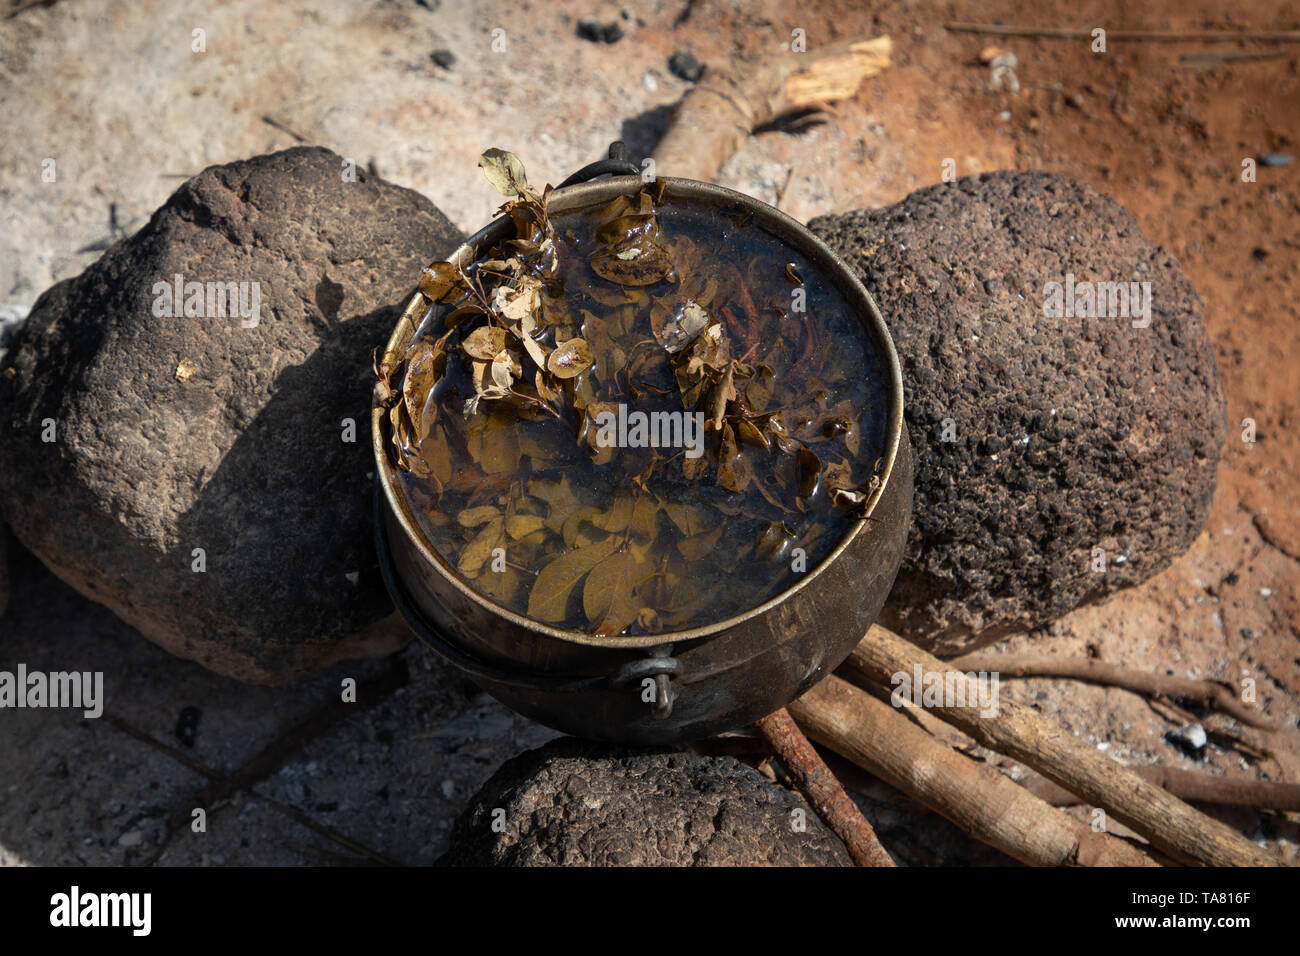 Fireplace for the cooking, Savanes district, Niofoin, Ivory Coast Stock Photo